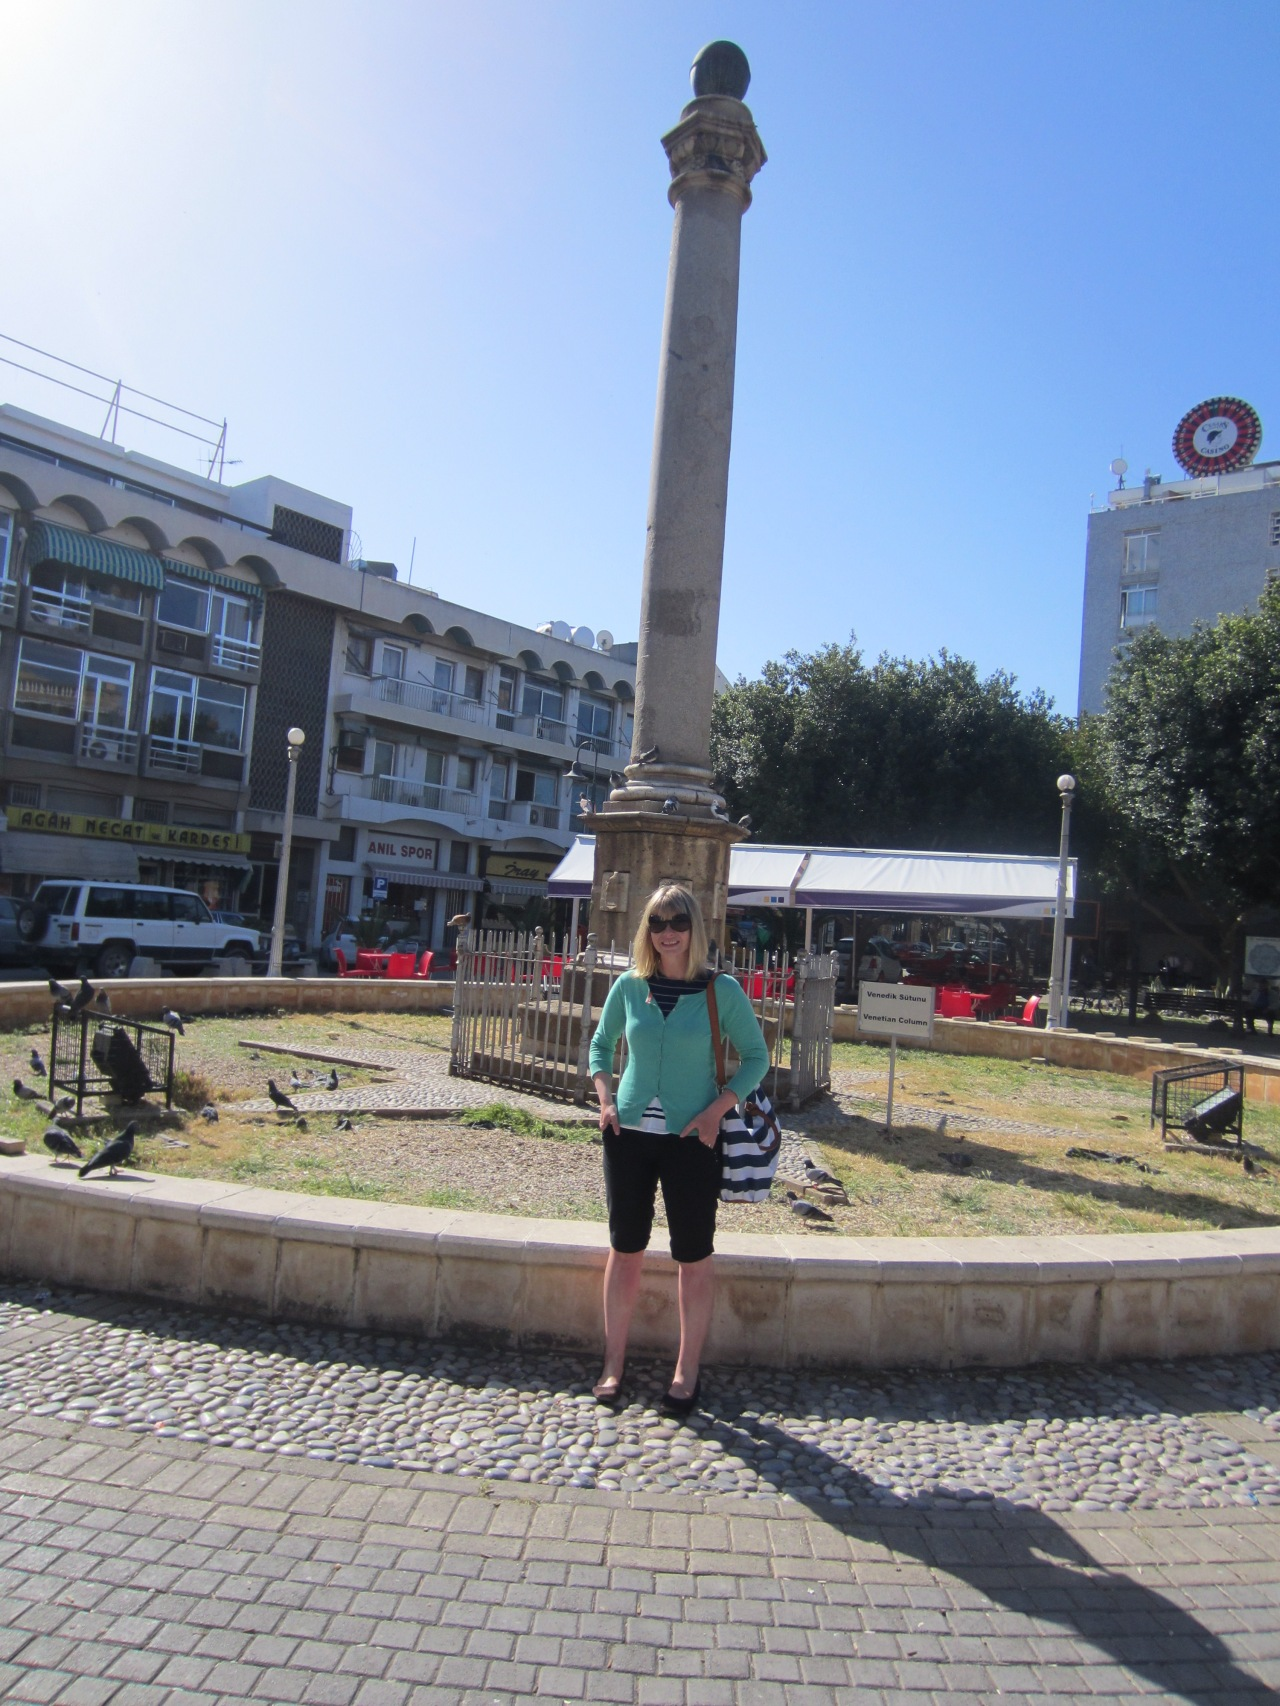 The only photo we had time to take in the Turkish part of Nicosia